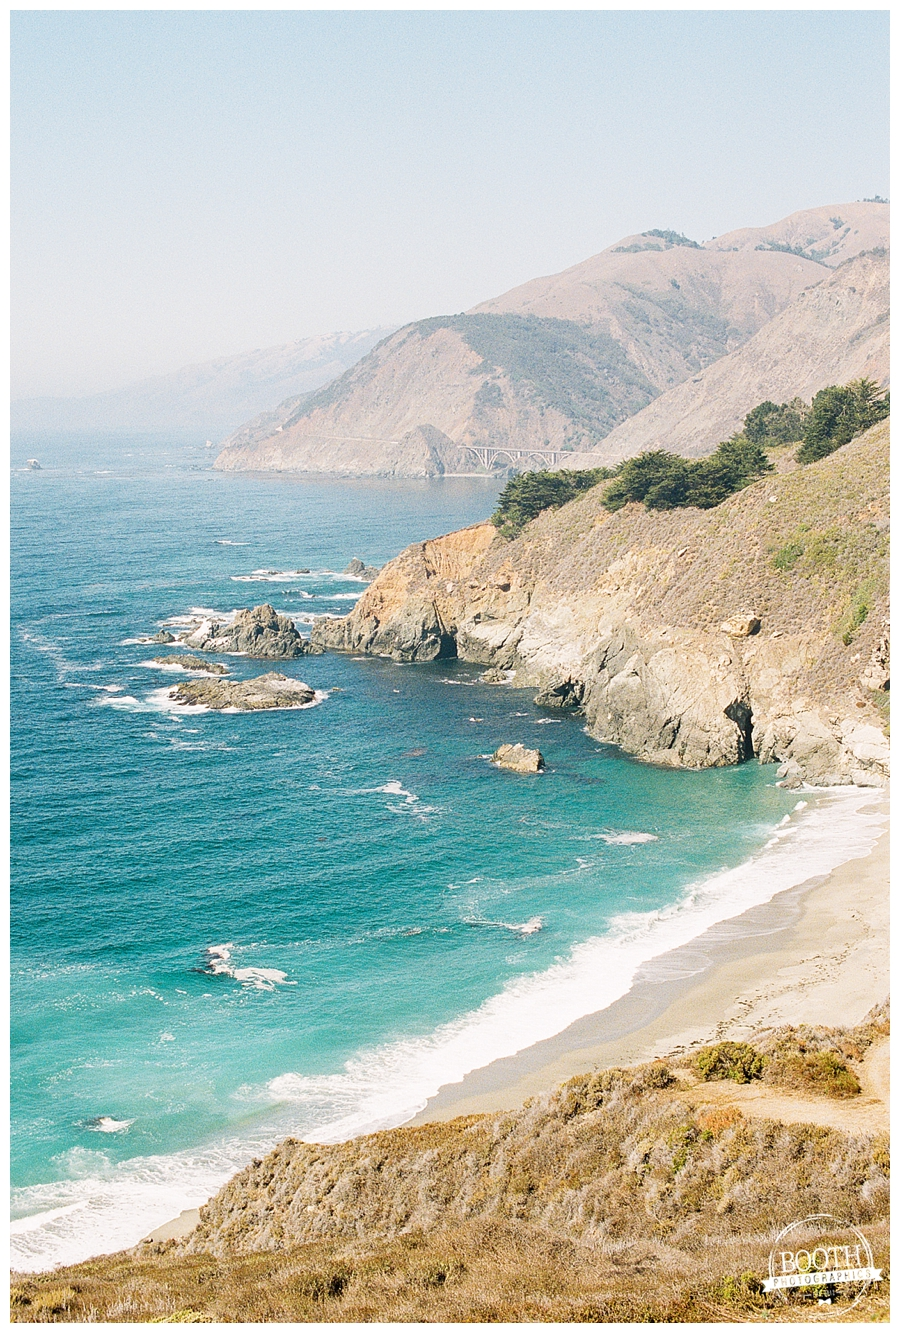 Beach and cliffs along the edge of the Pacific Ocean in Big Sur, California